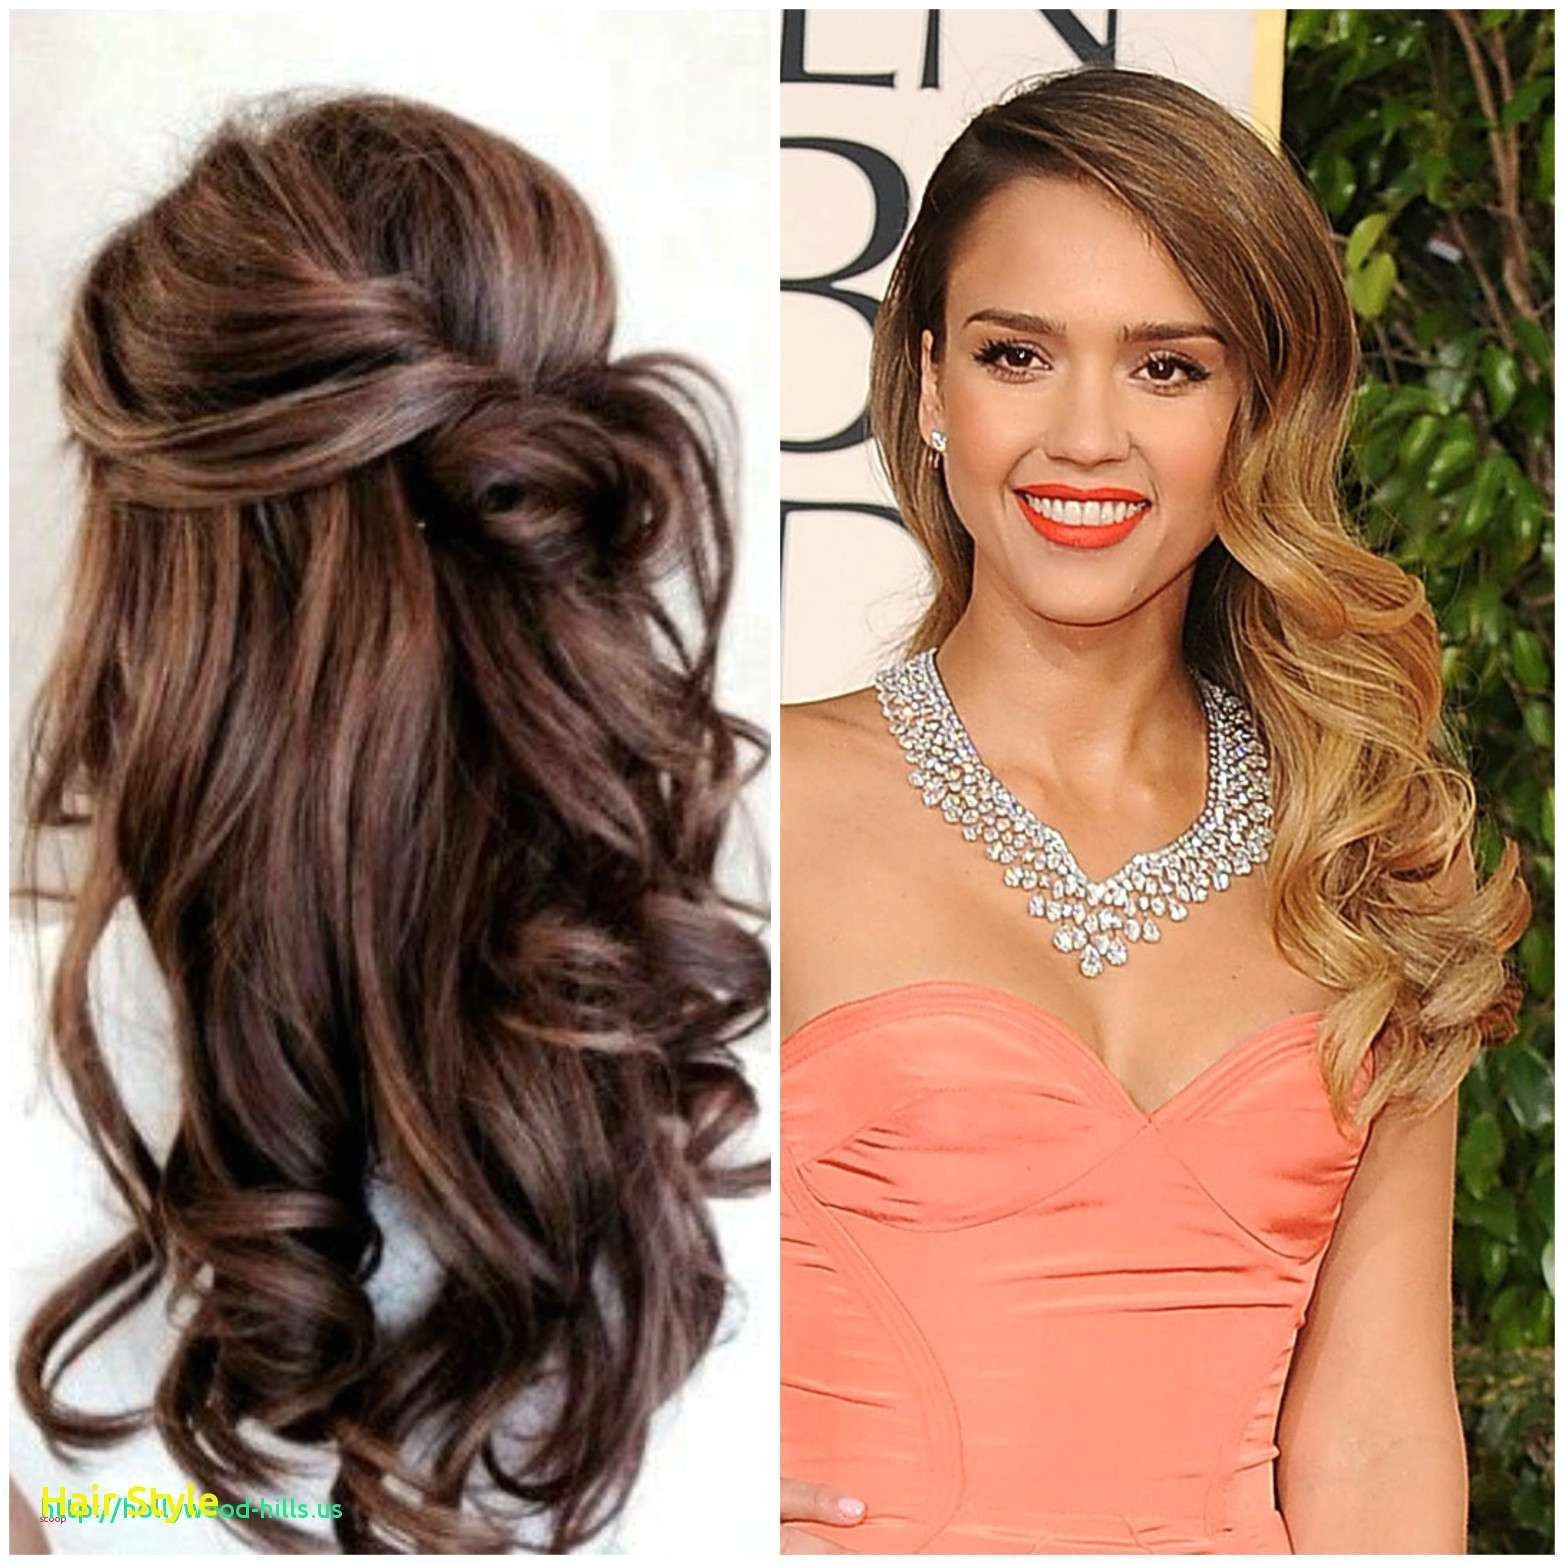 Easiest Hairstyles for Girls Inspirational Simple and Easy Hairstyle